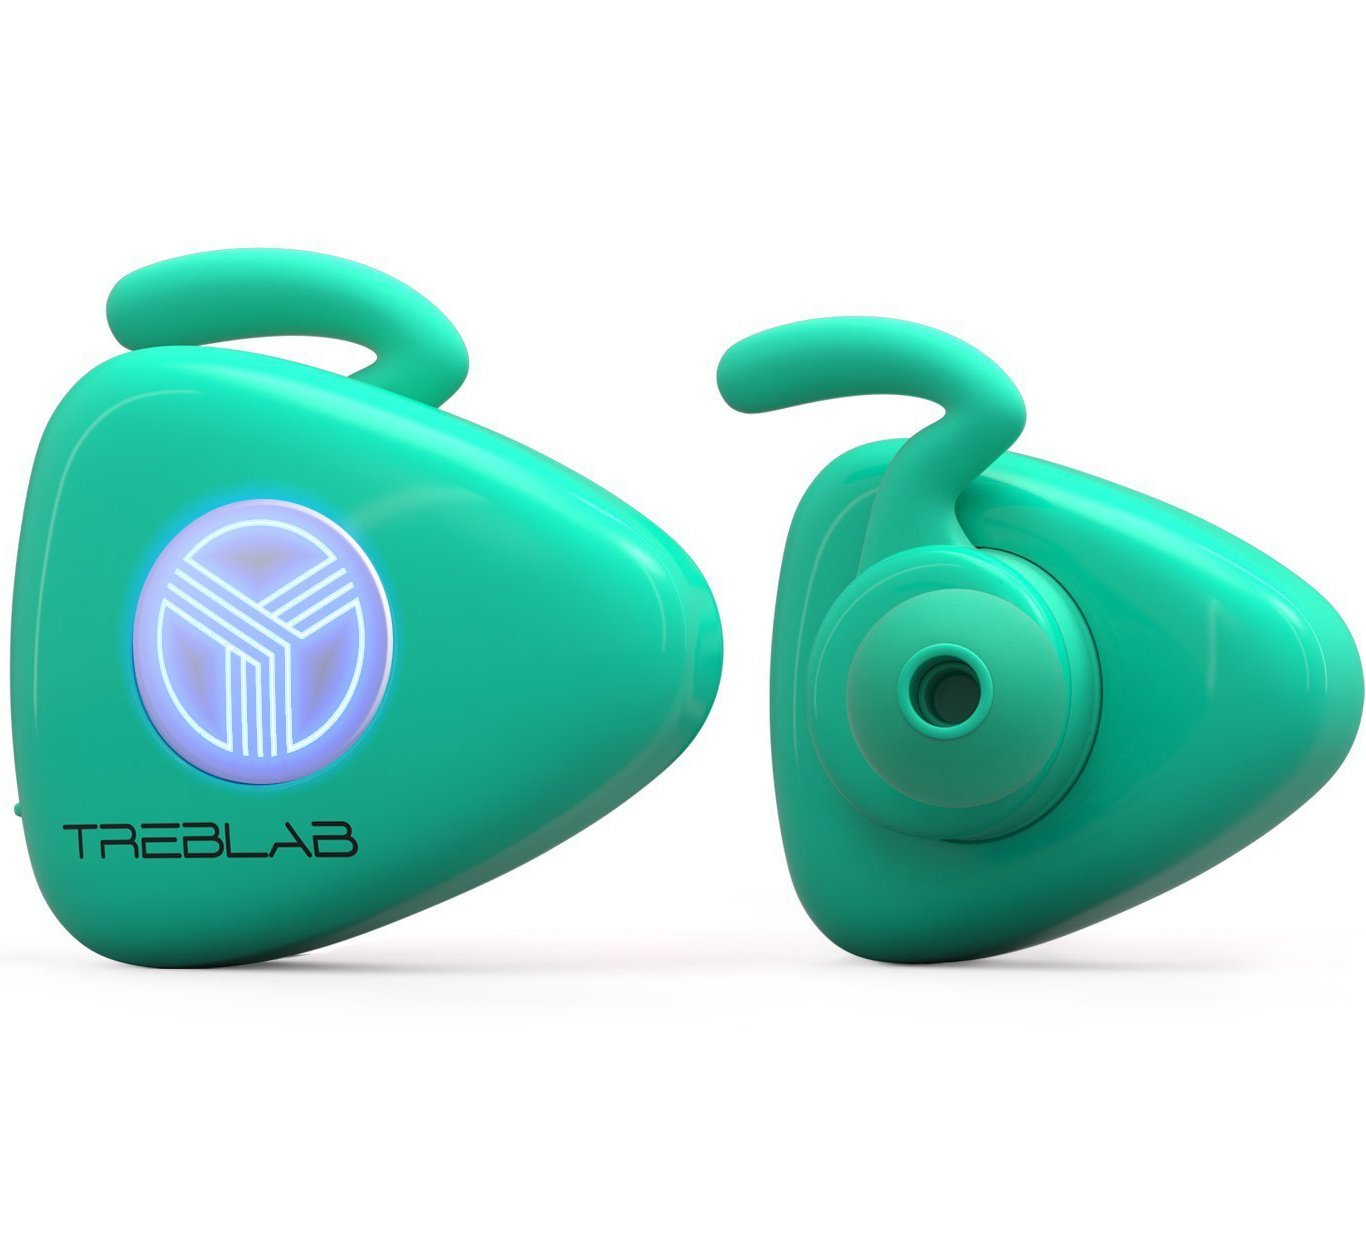 TREBLAB X11, Truly Wireless Bluetooth Earbuds, Best Sports Headphones for Running, Workout and Travel. True HD Sound, Secure-Fit, IPX4 Sweat-Proof, Noise Cancelling Headset w/Mic (Baby Blue)